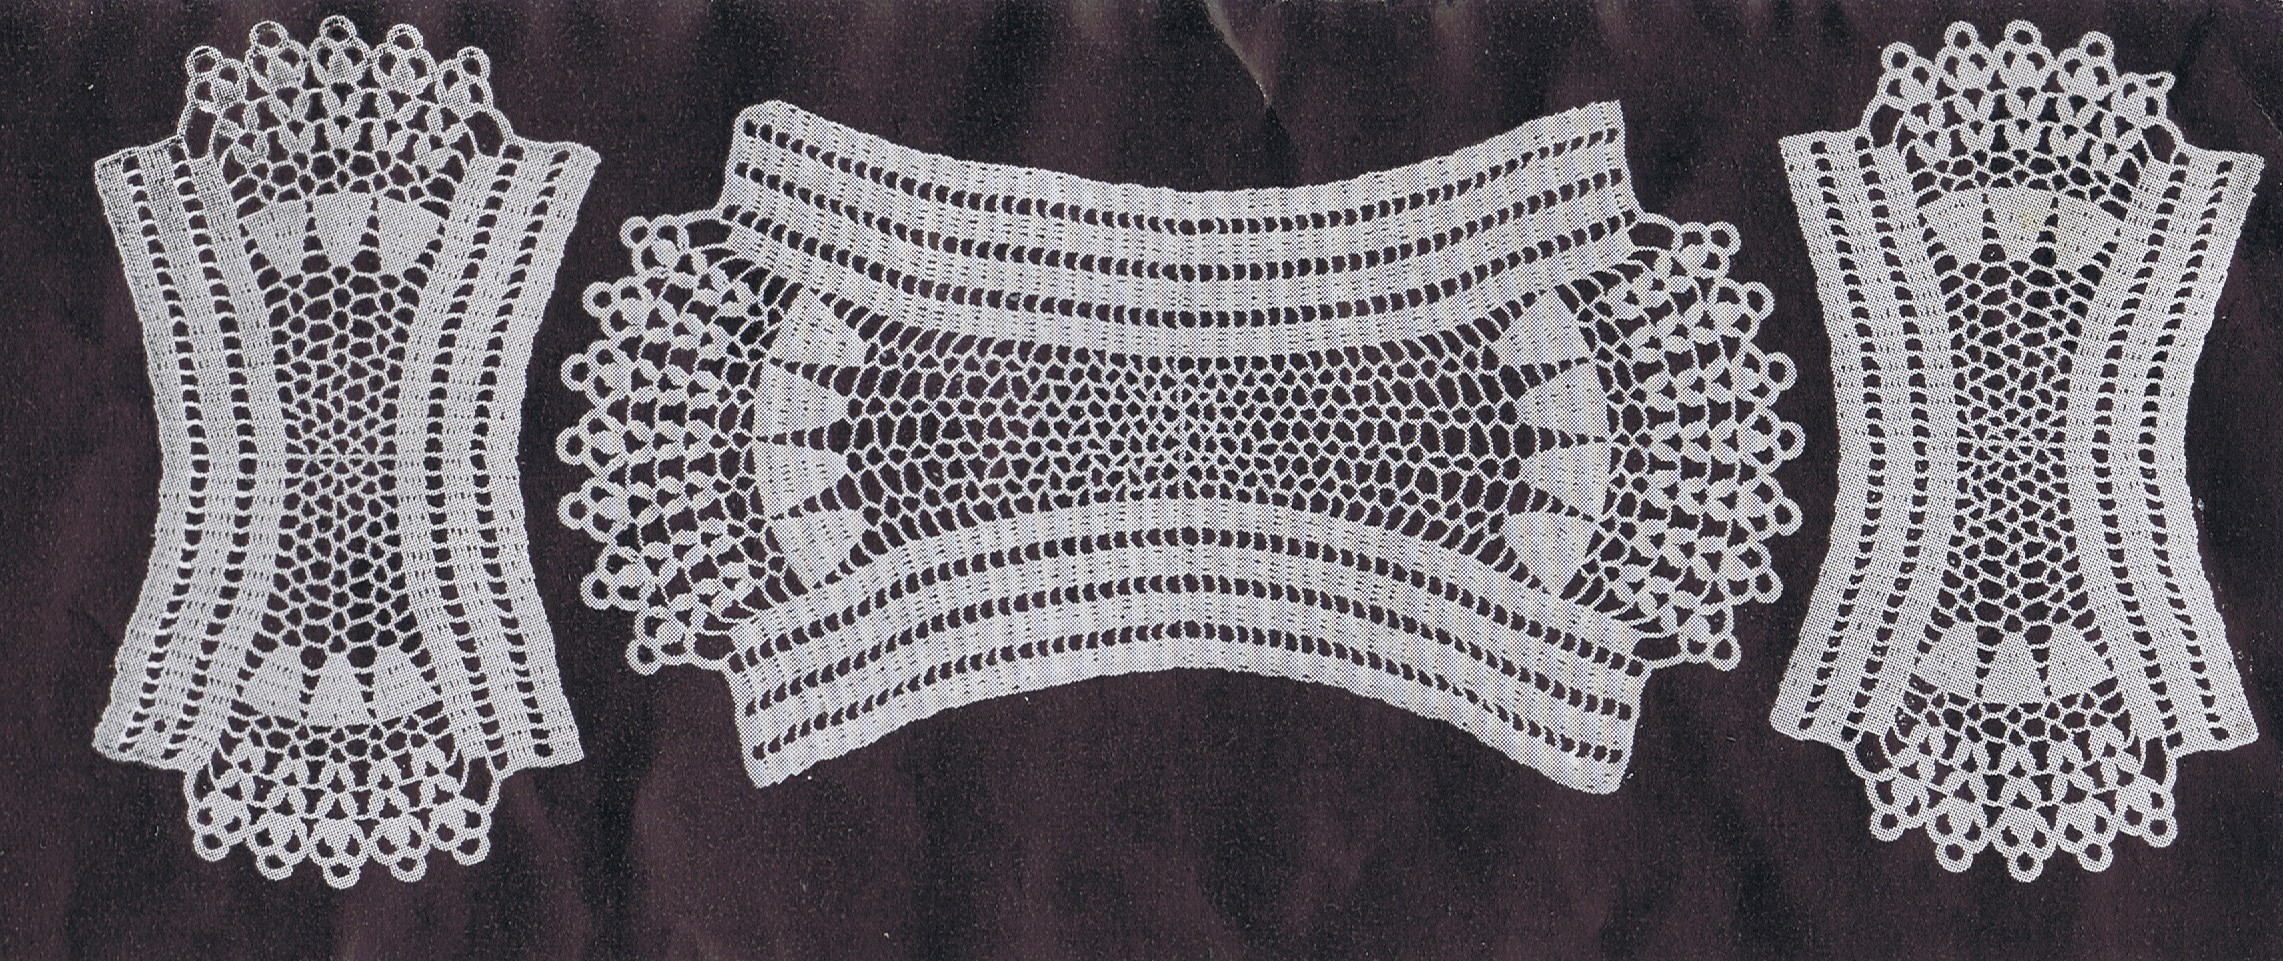 Vintage Crochet Pineapple Tablecloth Pattern Free Round Table Designs